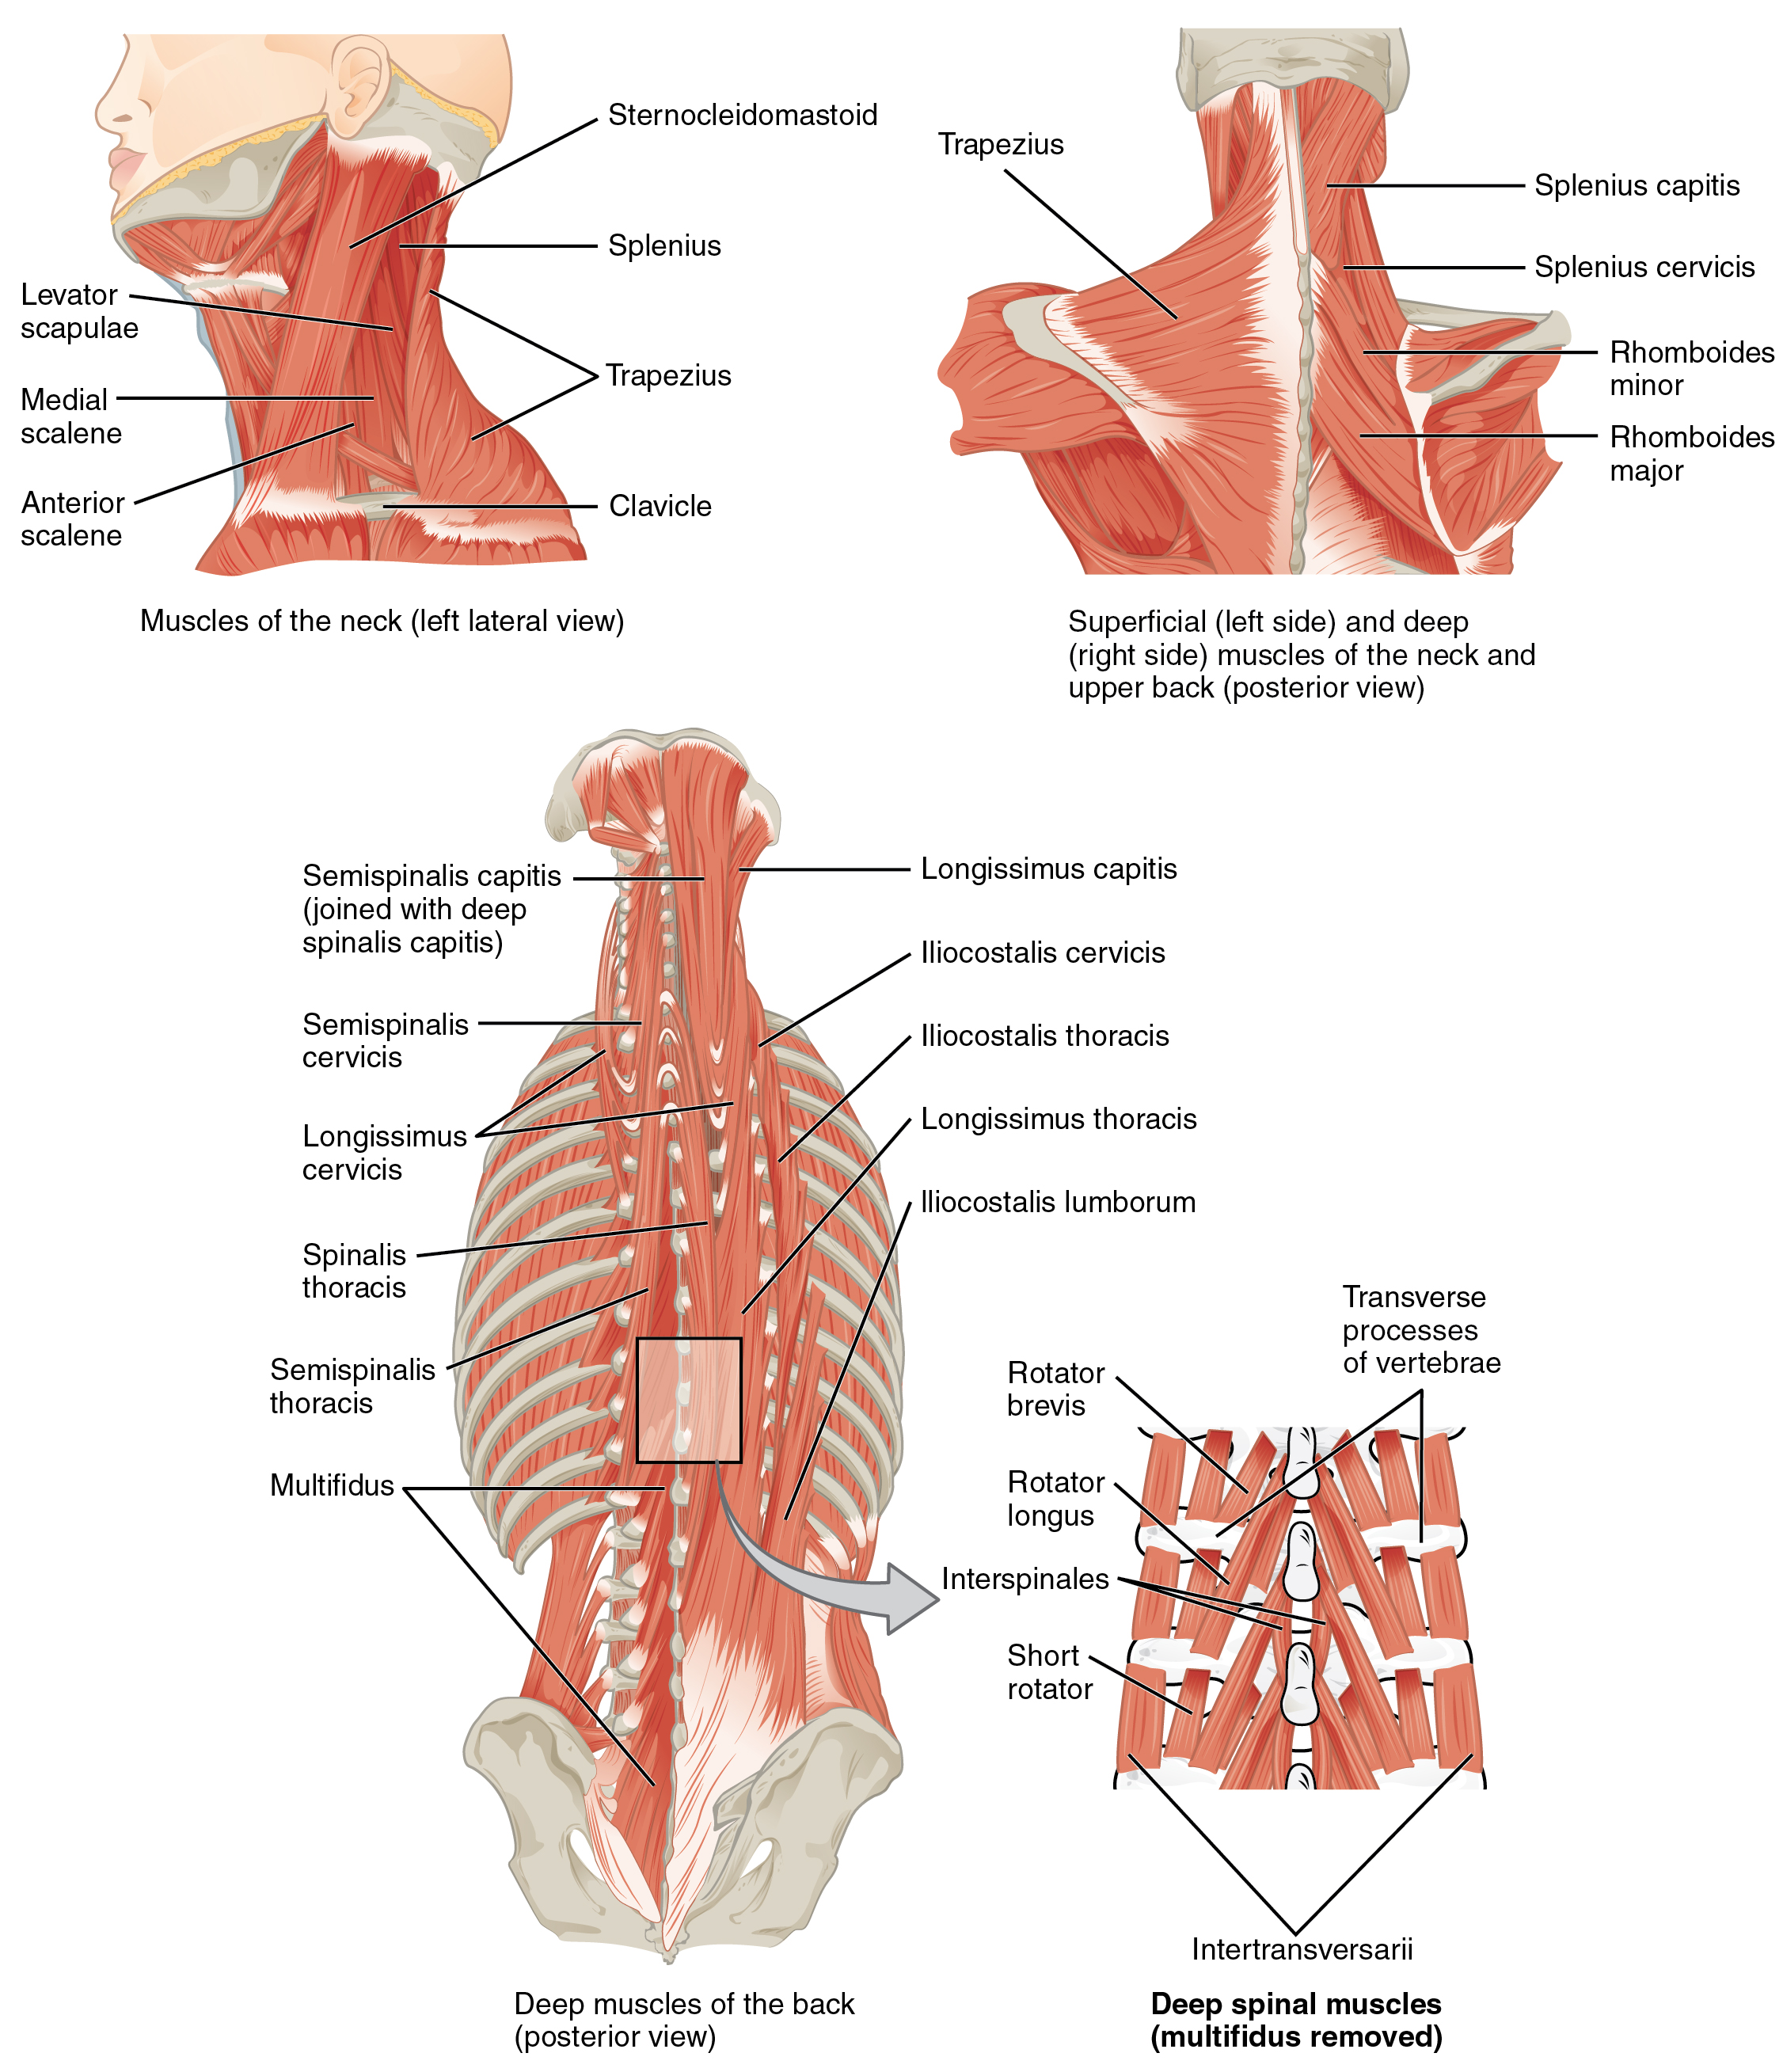 113 Axial Muscles Of The Head Neck And Back Anatomy And Physiology